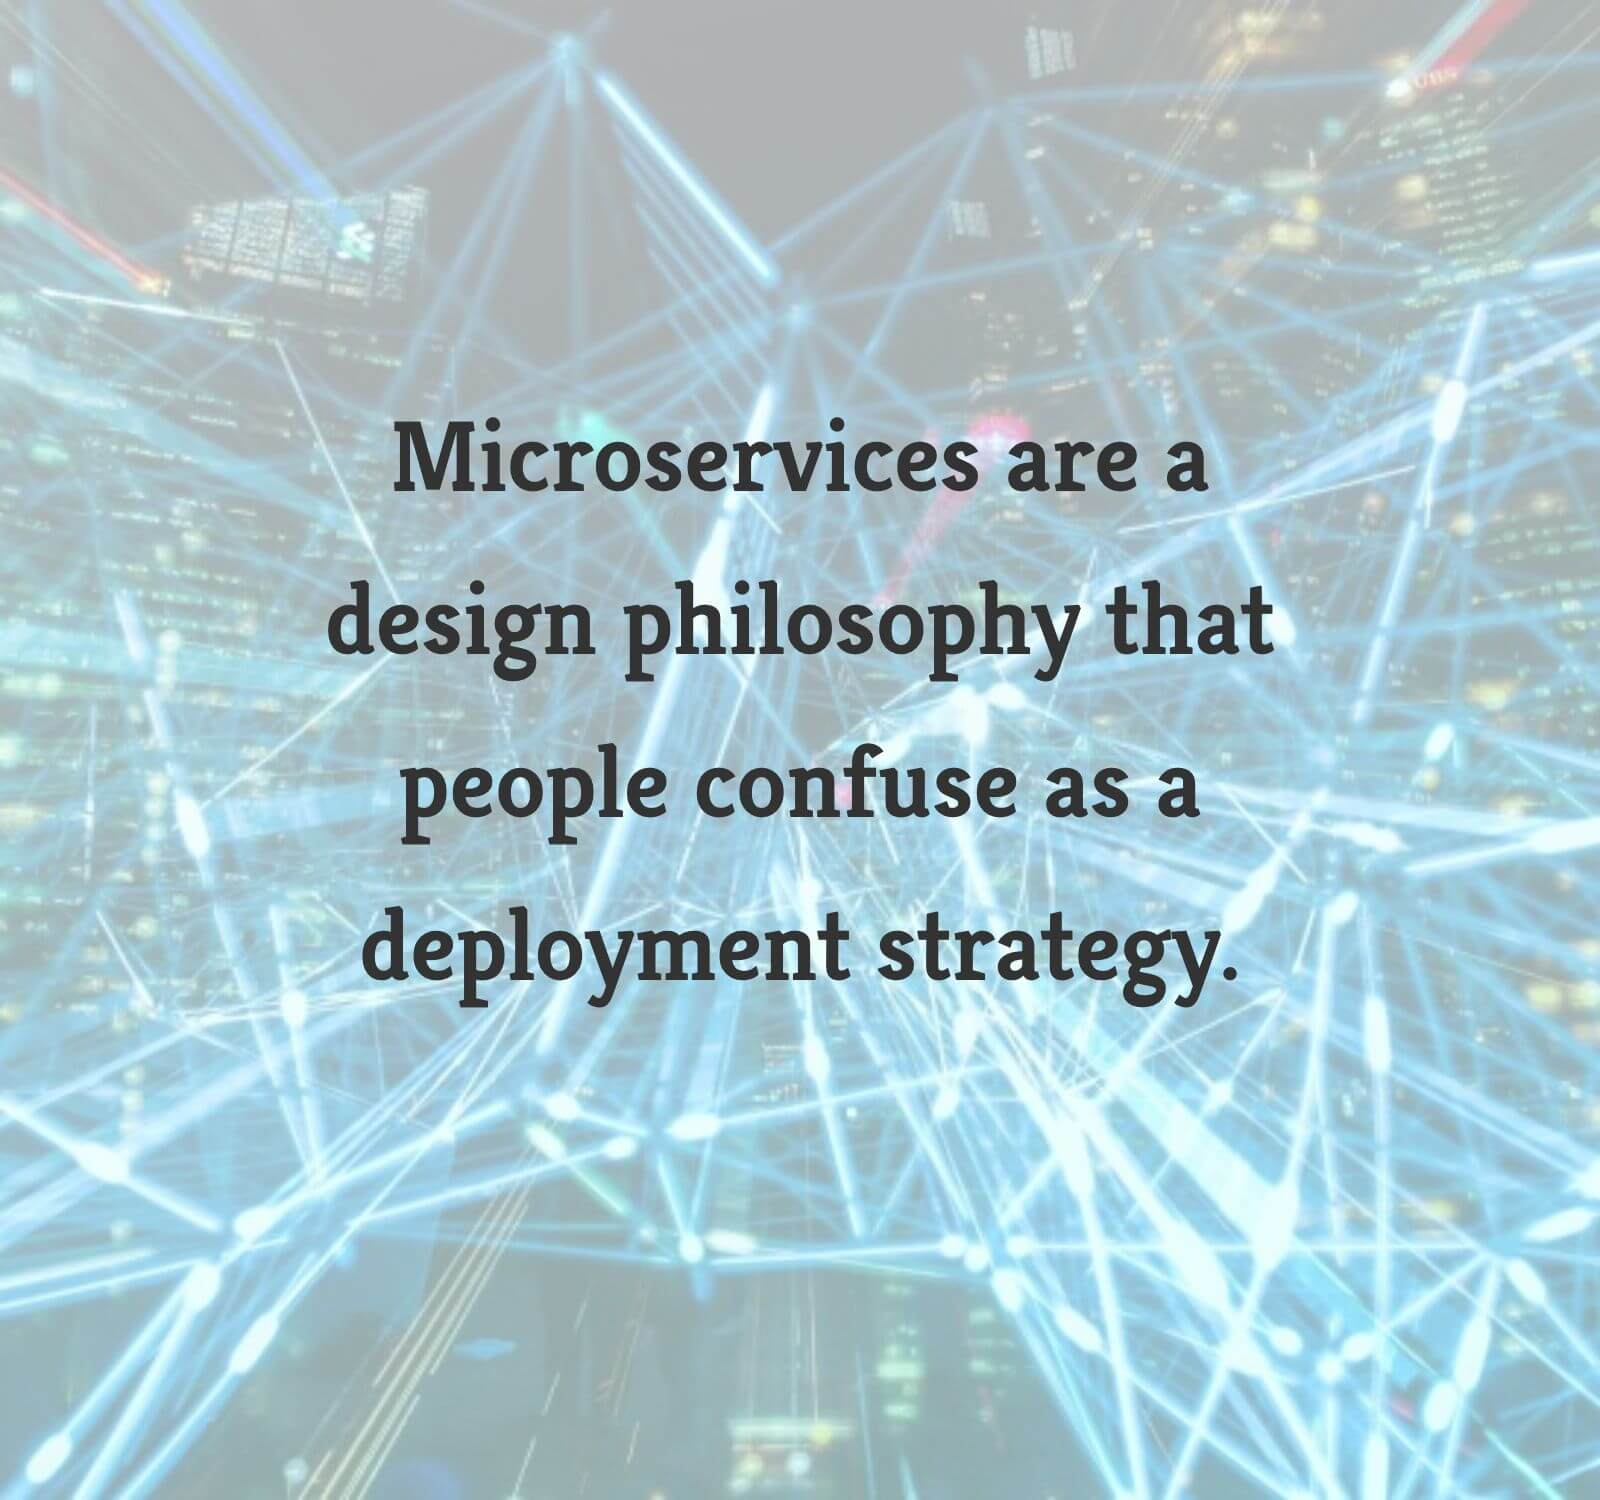 Microservices are a design philosophy that people confuse as a deployment strategy